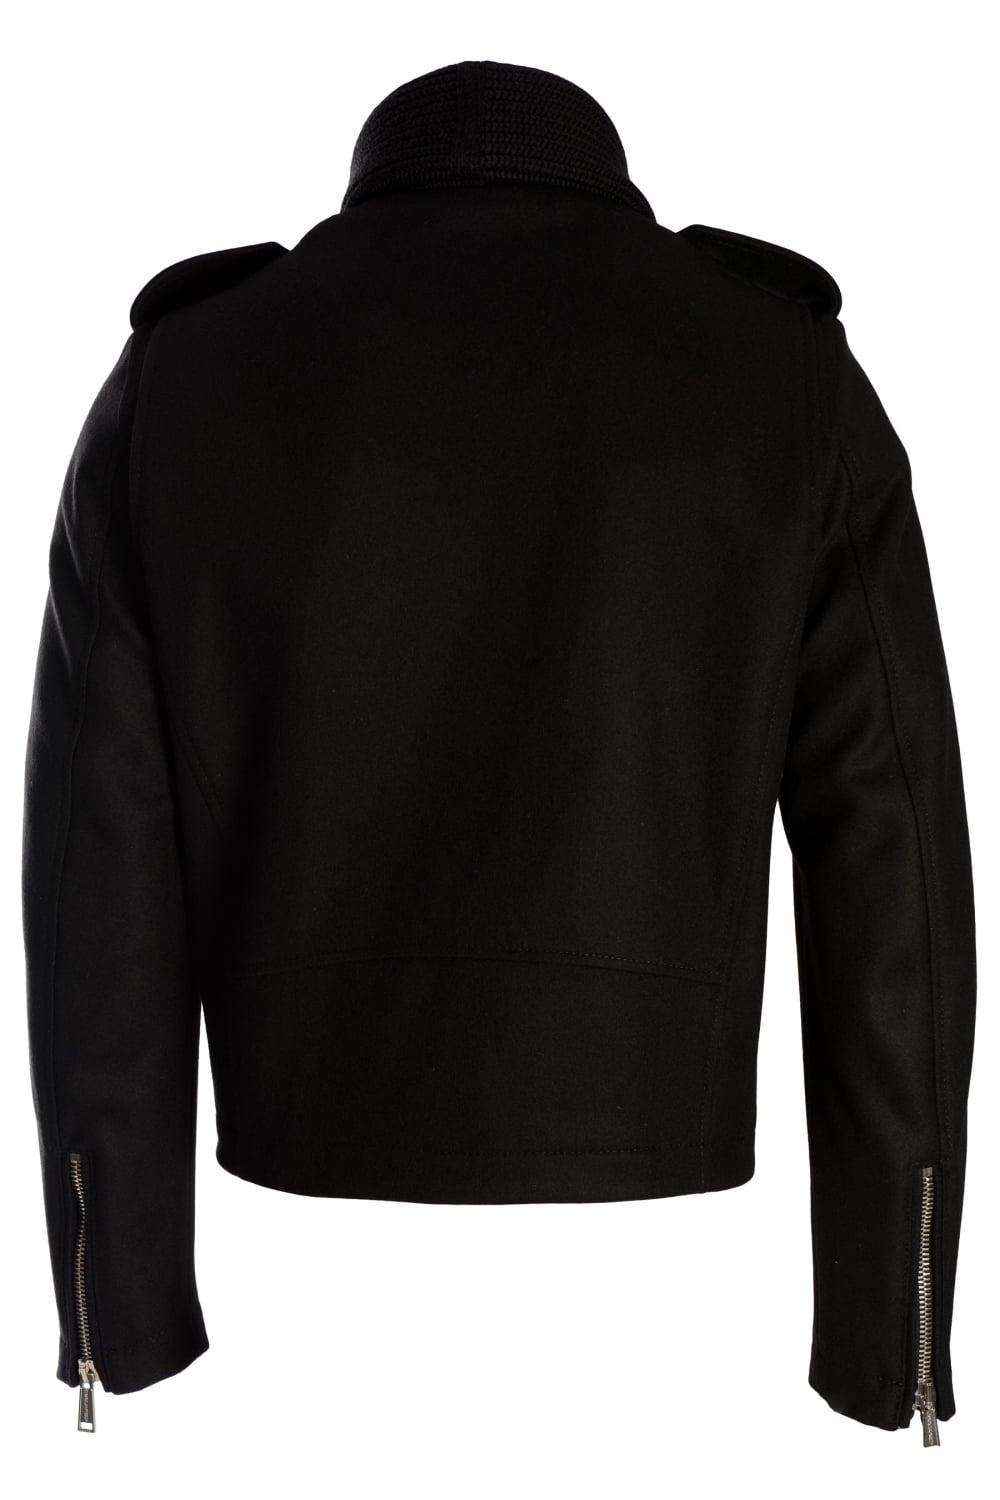 DSquared² Wool Dsquared Knitted Shawl Collar Black Jacket for Men